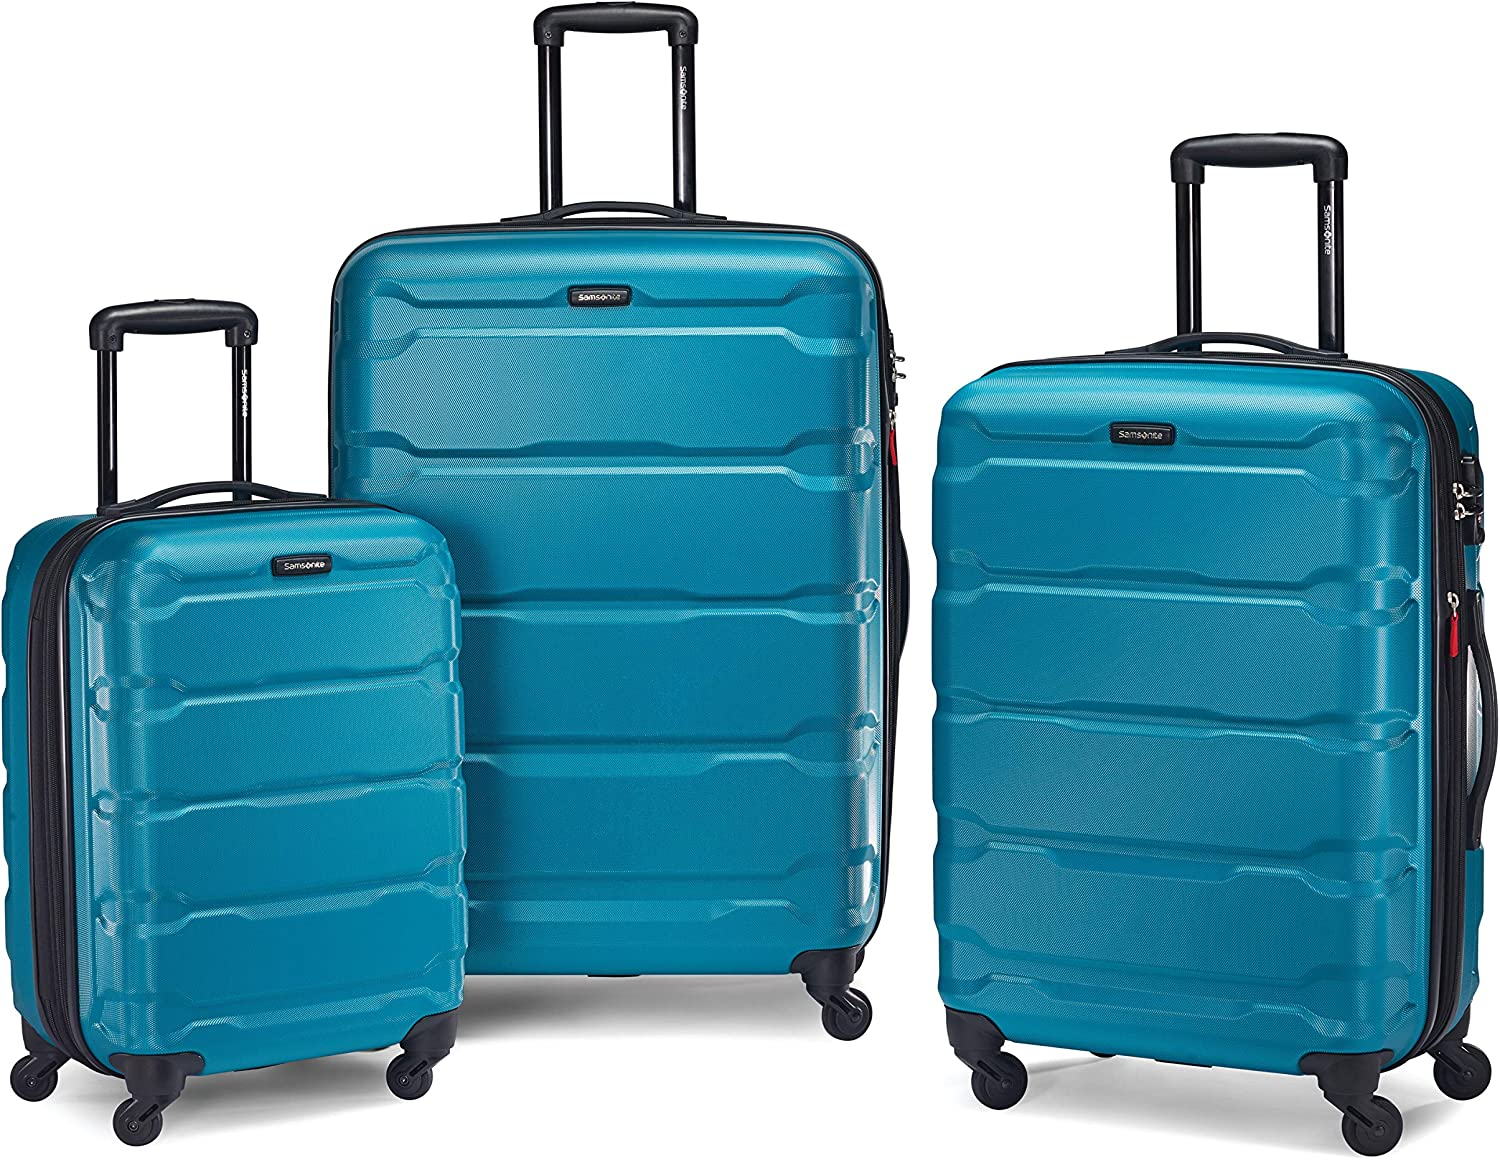 samsonite arrival 3 piece spinner expandable luggage set,samsonite spectacular 3-piece hard side expandable luggage set - black,samsonite mcgrath 3-piece hard side expandable luggage set,samsonite mcgrath 3-piece hard side expandable luggage set - silver,samsonite spectacular 3-piece hard side expandable luggage set,samsonite lamont 3 piece expandable spinner luggage set,samsonite hyperspace xlt 3-piece expandable spinner luggage set,samsonite centric 3 piece expandable hardside spinner luggage set,samsonite englewood 3 piece expandable hardside spinner luggage set,samsonite signat 1 3-piece hard side expandable luggage set